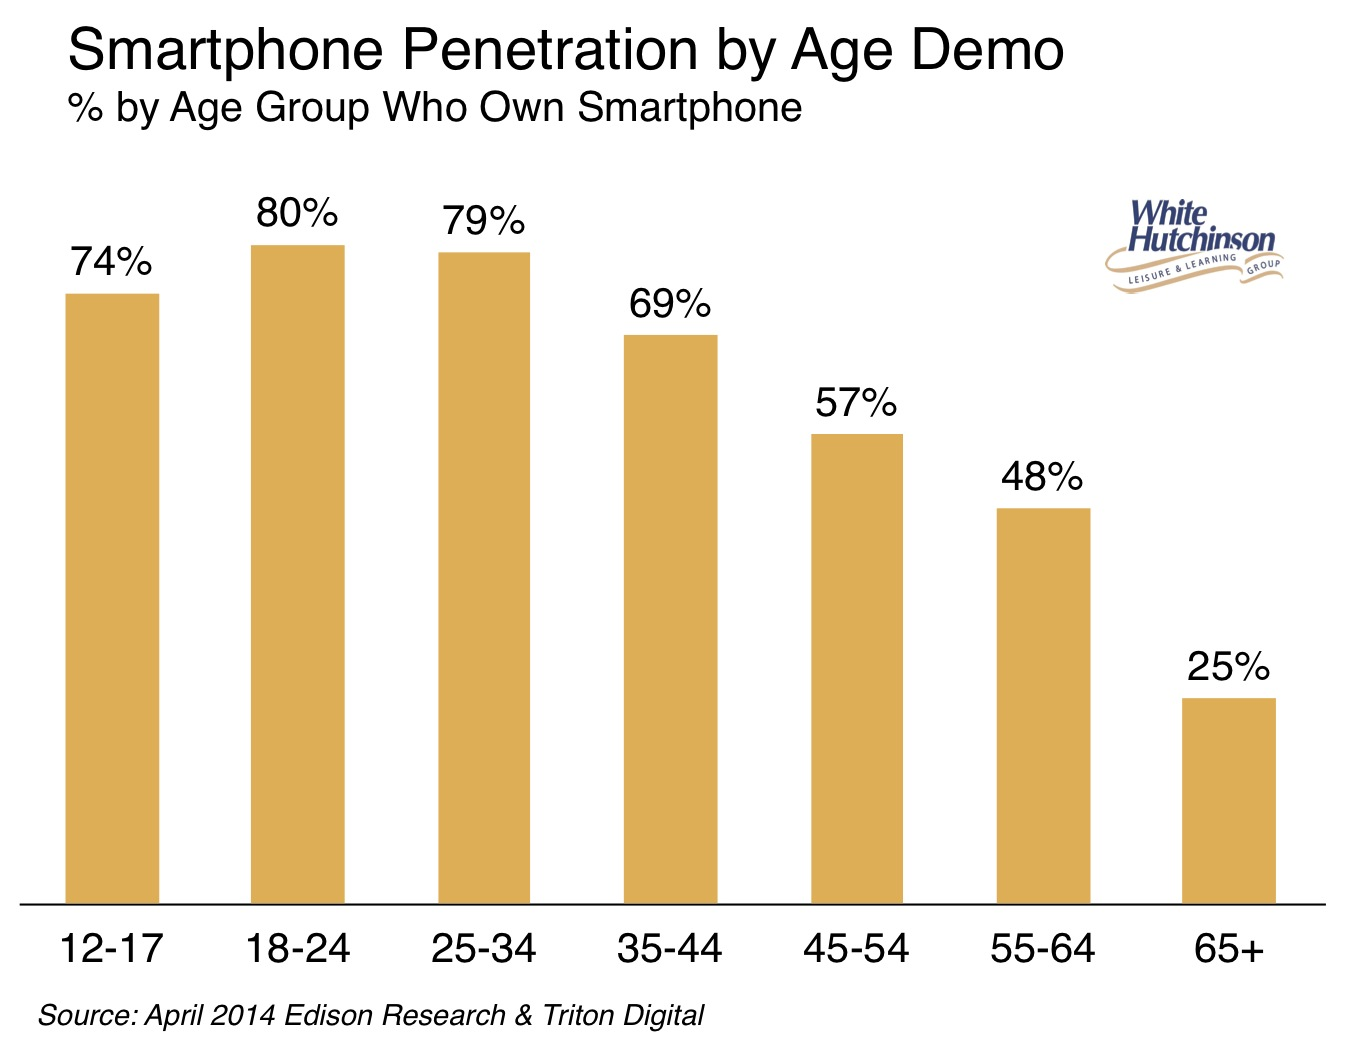 Smartphone penetration by age